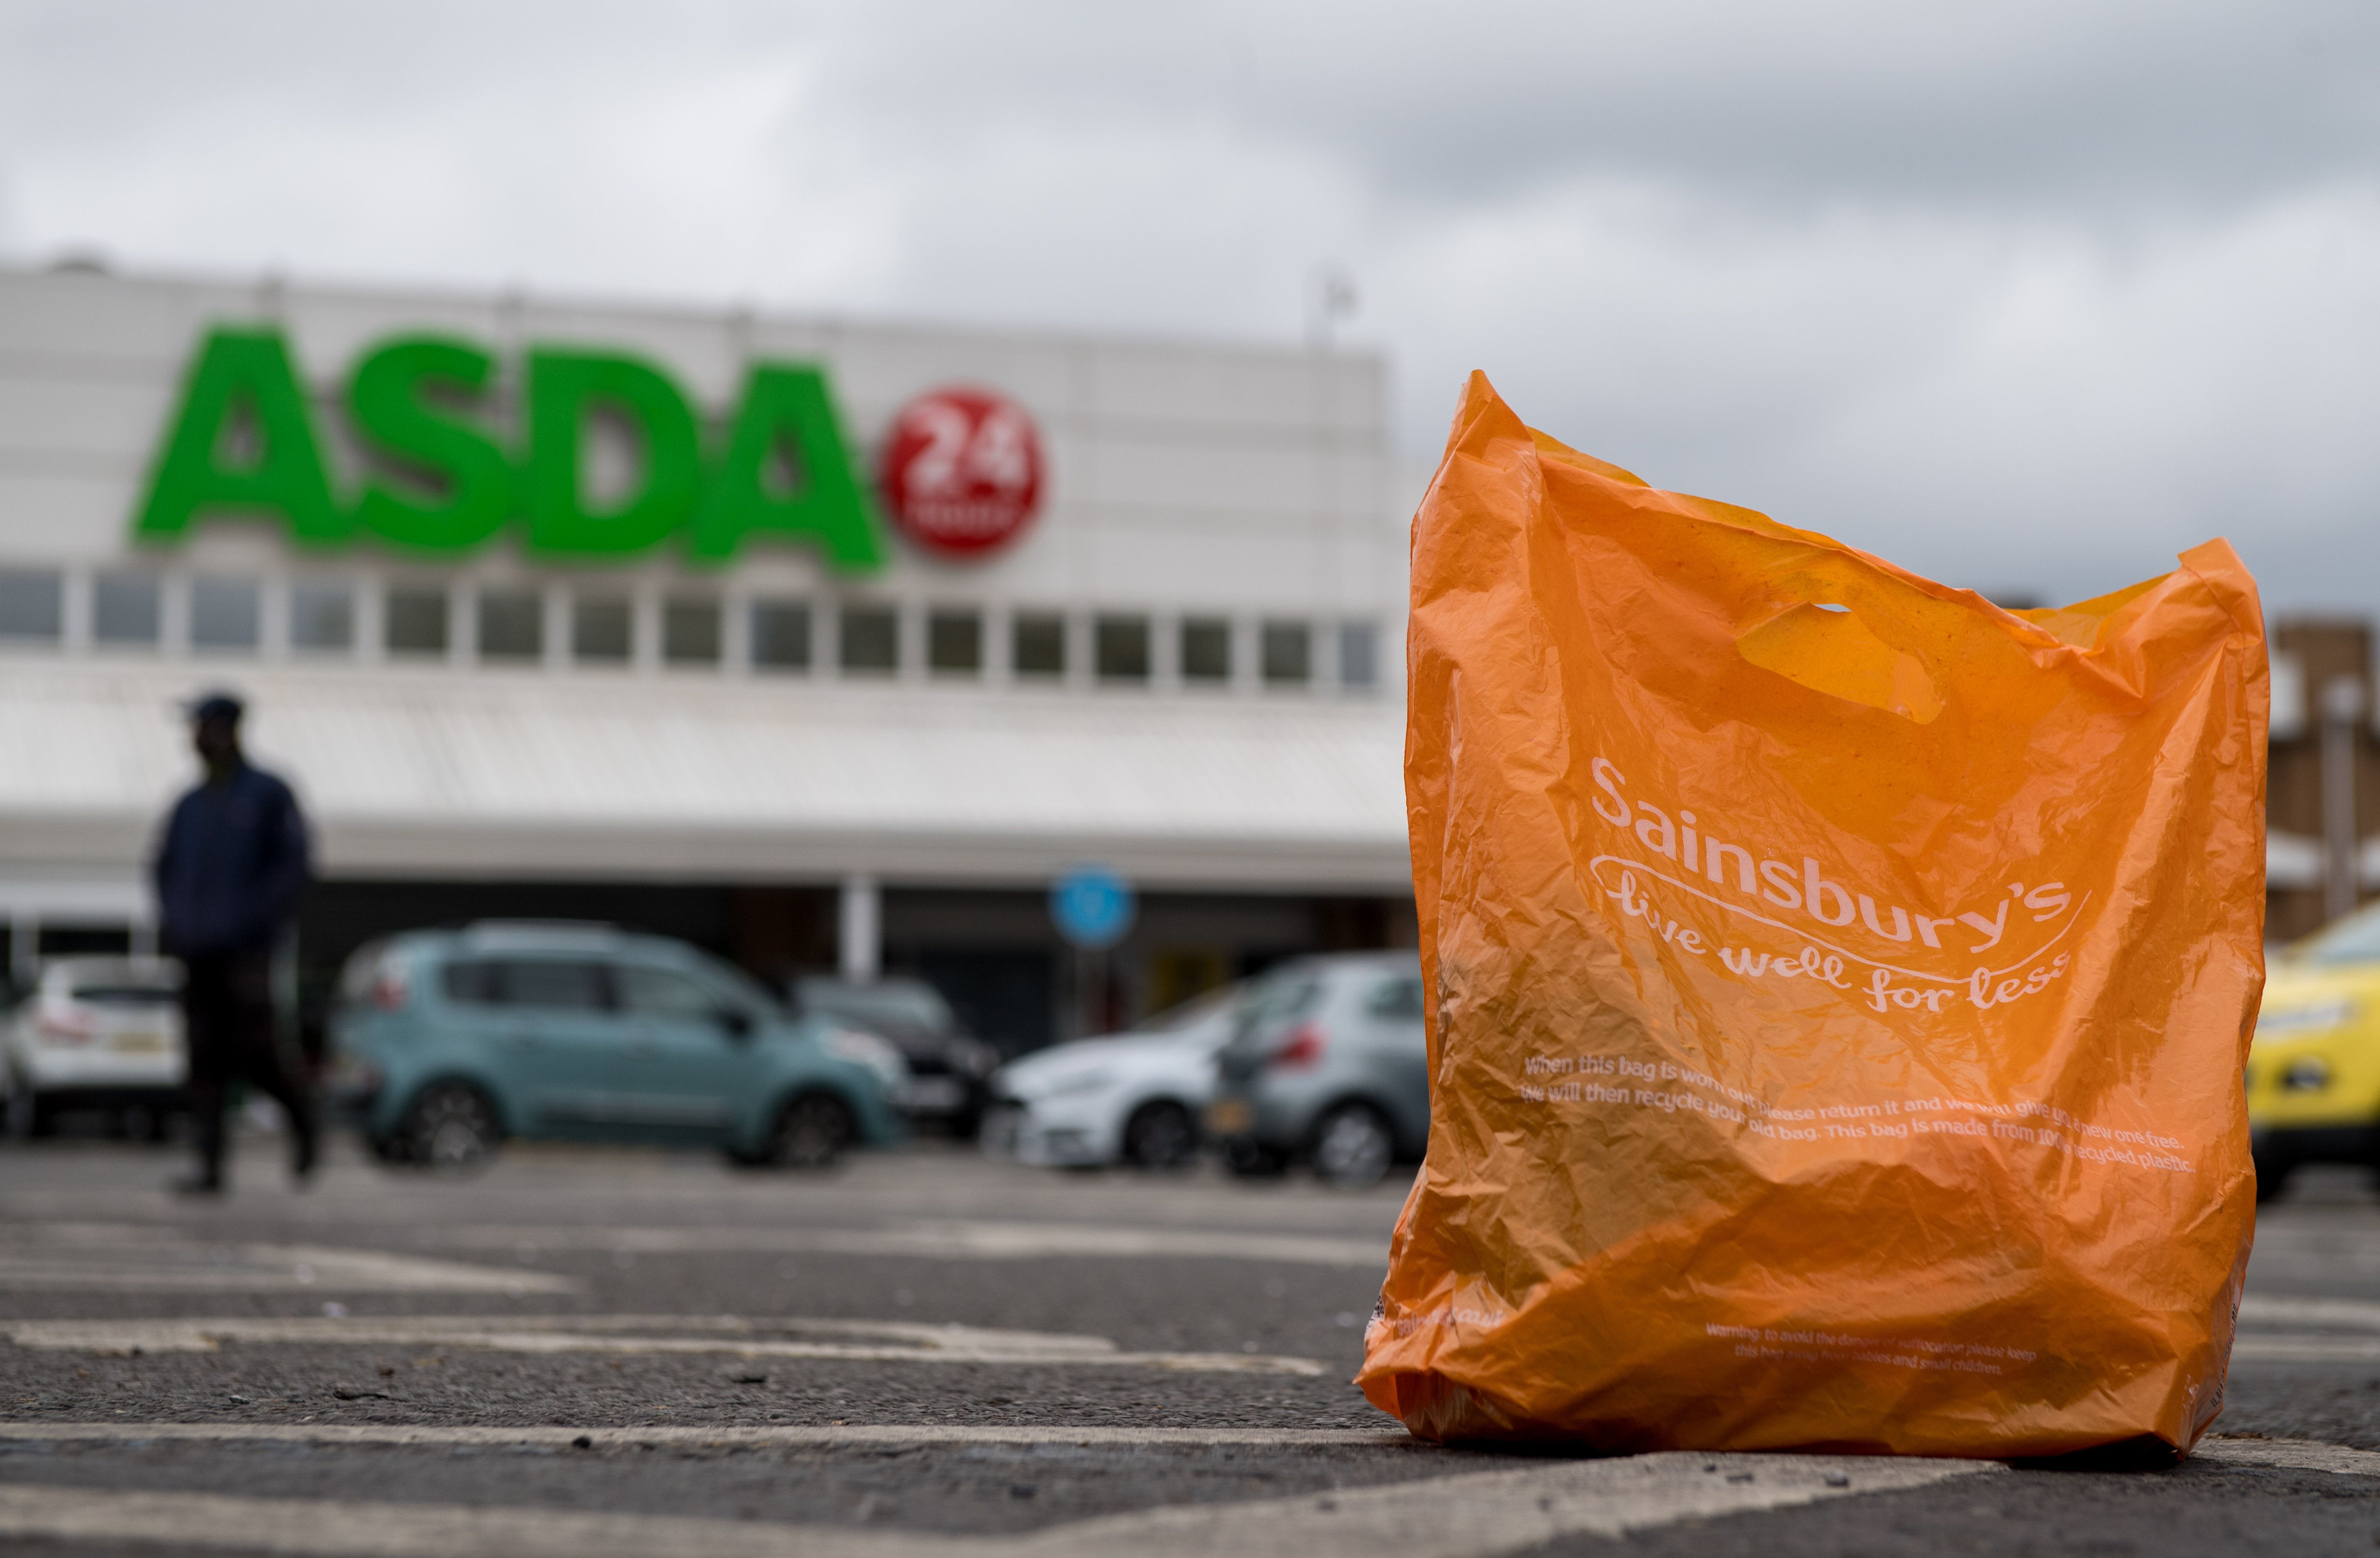 What Could The Sainsbury's Asda Merger Mean For